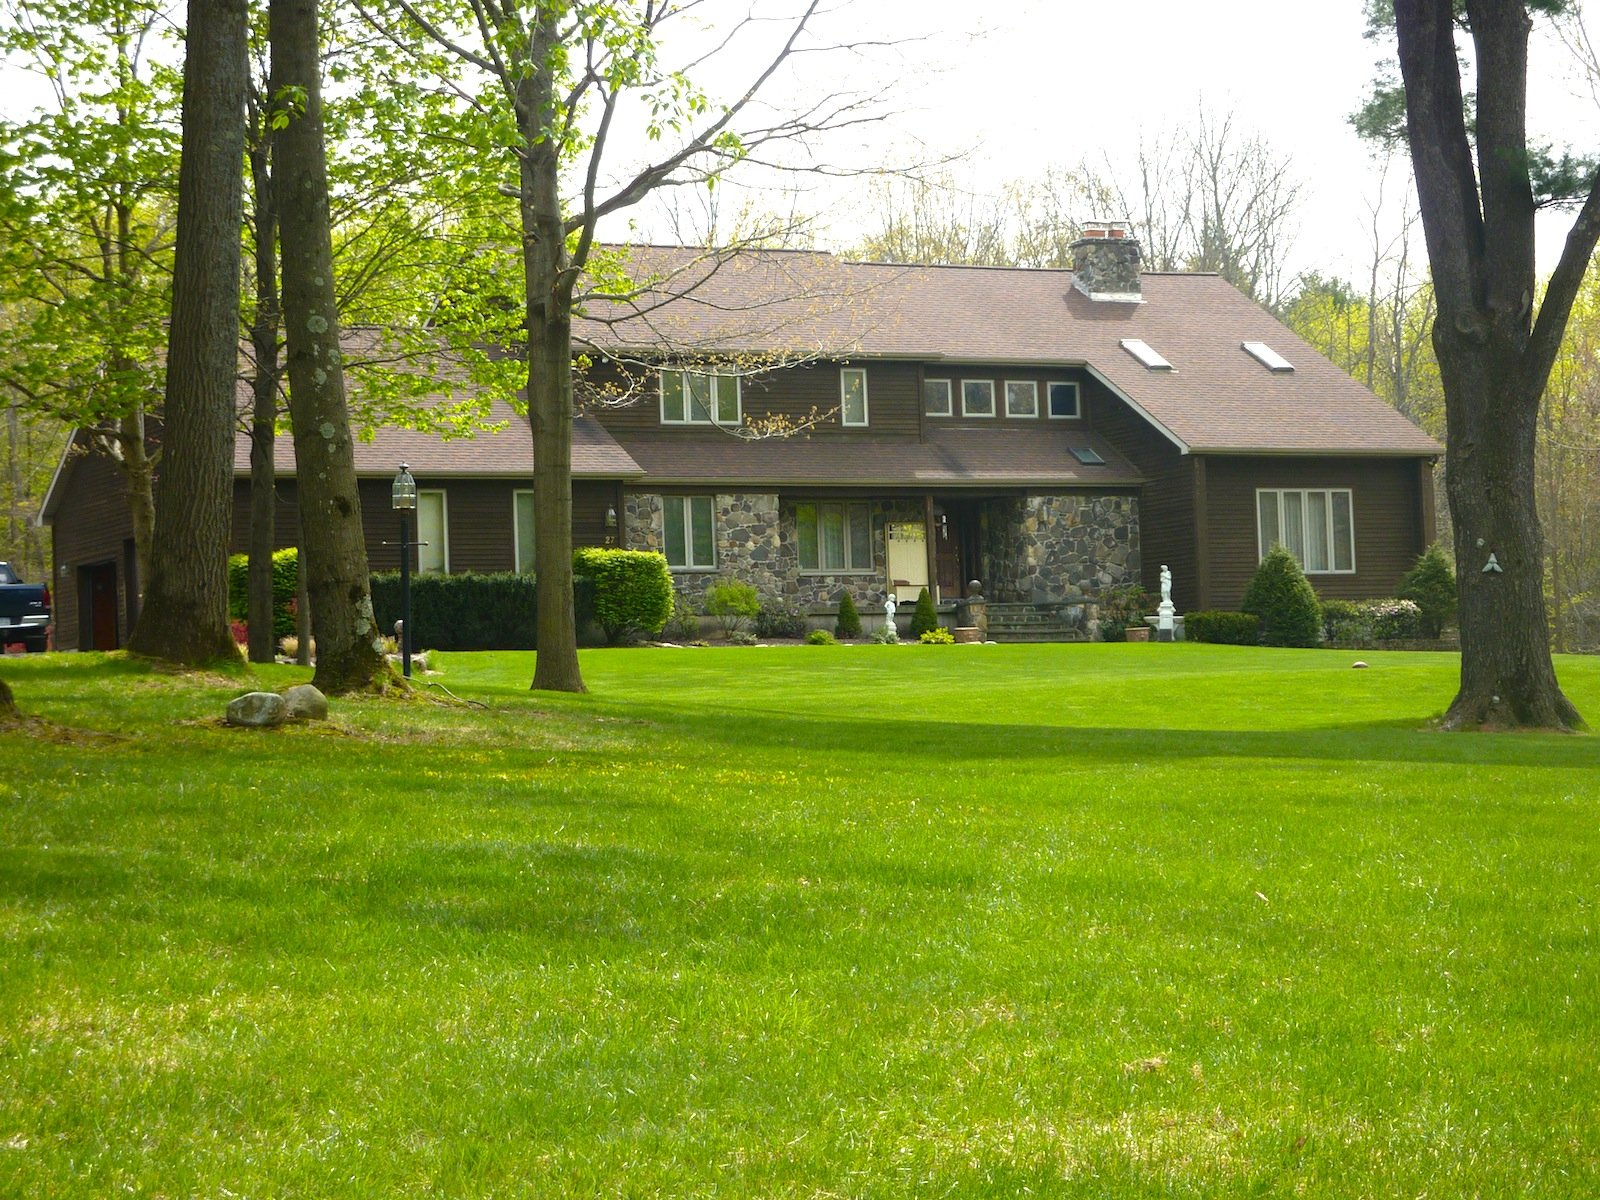 House for sale executive estate property in charlton new for House in new york for sale